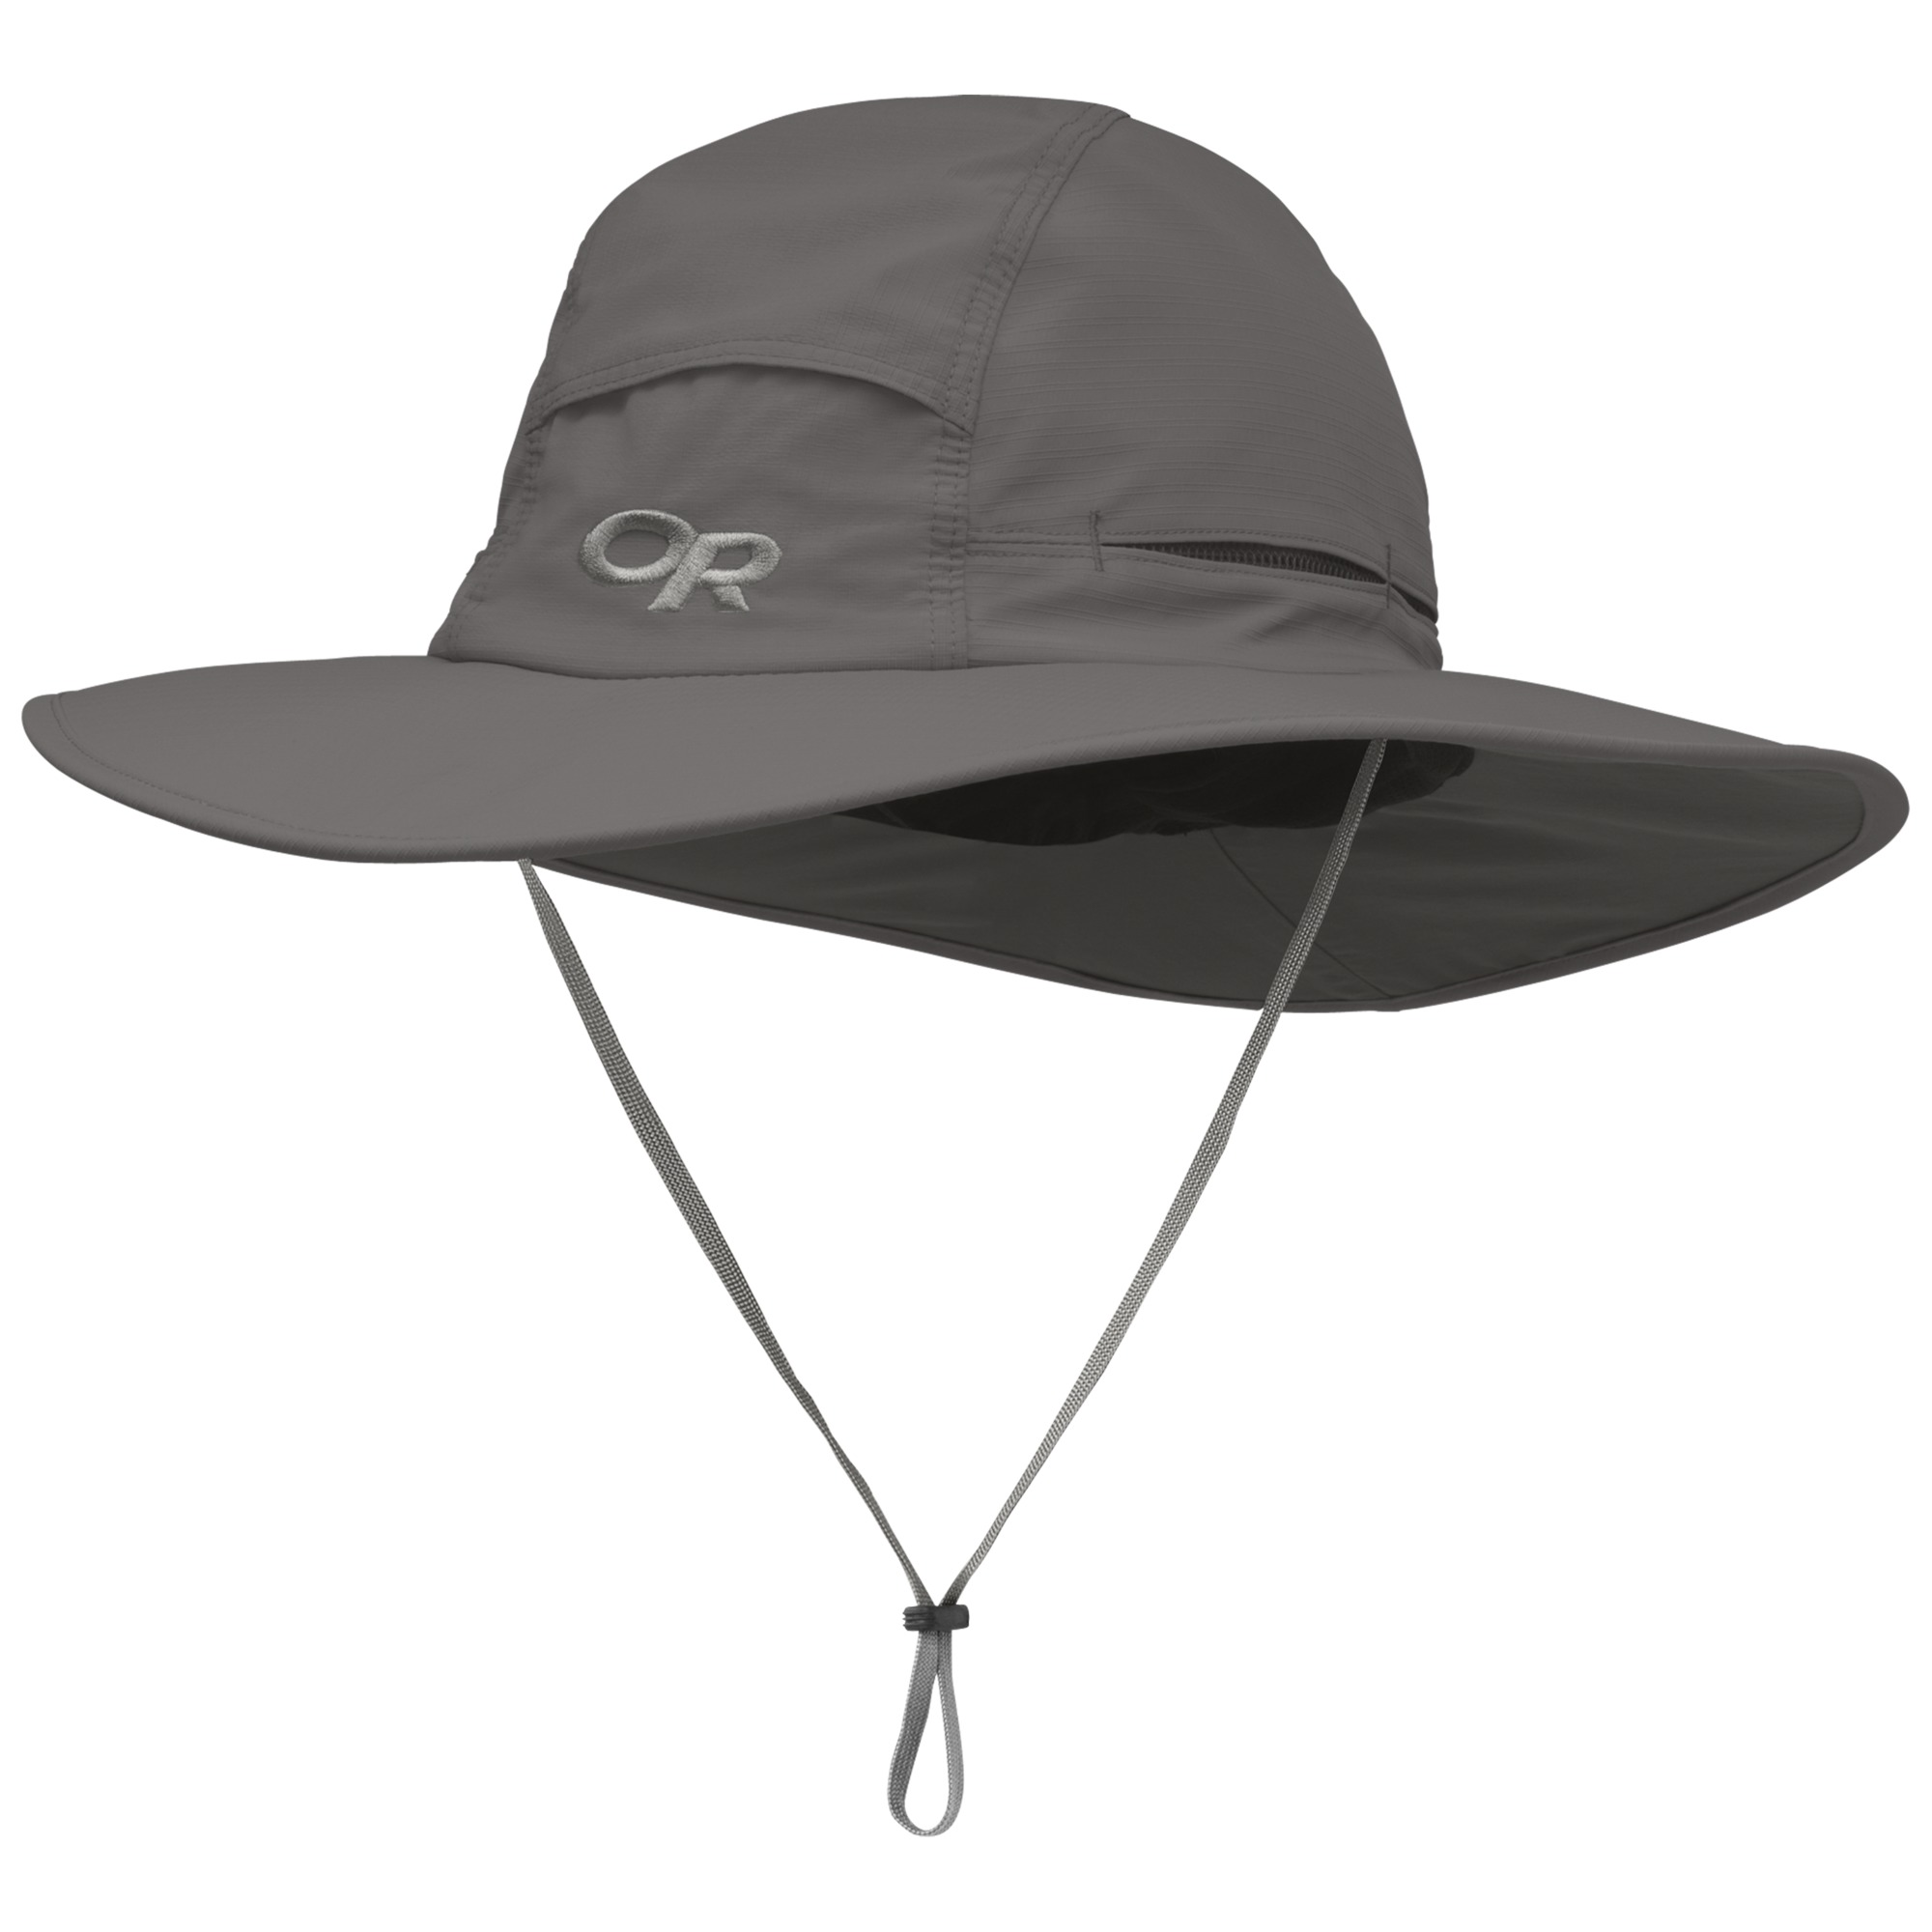 827779eca2600 Sombriolet Sun Hat - pewter